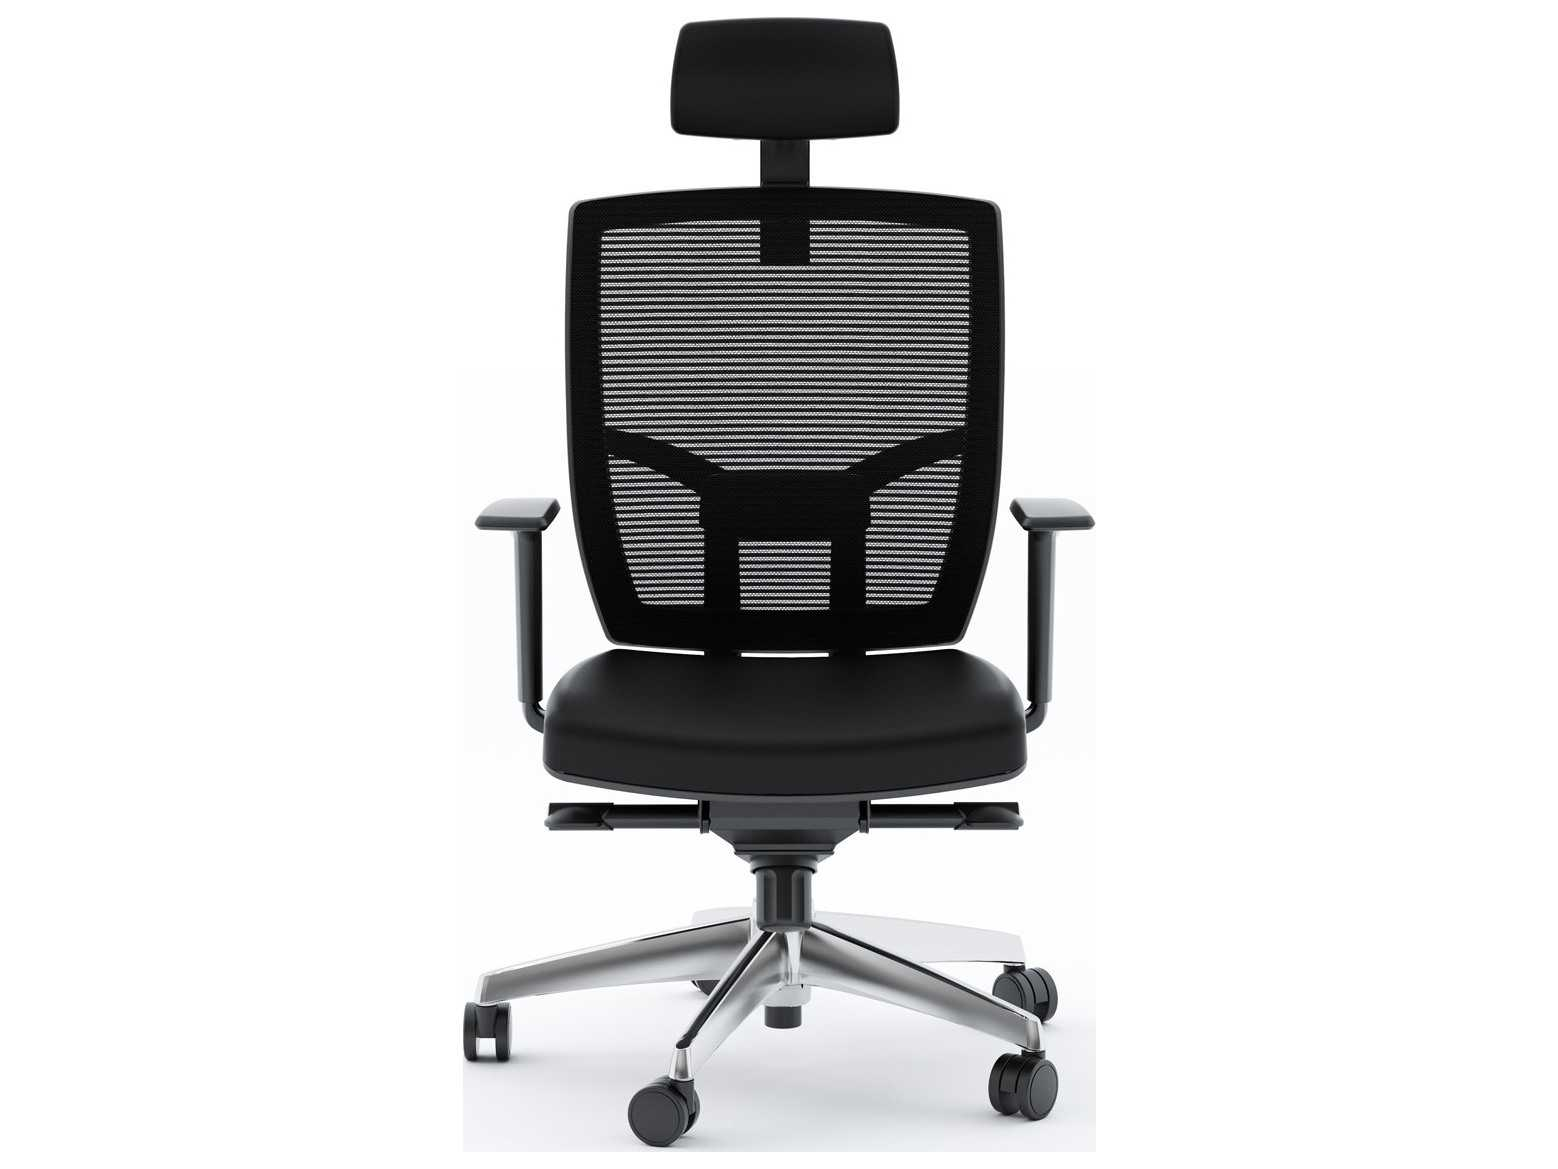 Best Computer Chairs For Long Hours Exercises To Offset Sitting Fupping